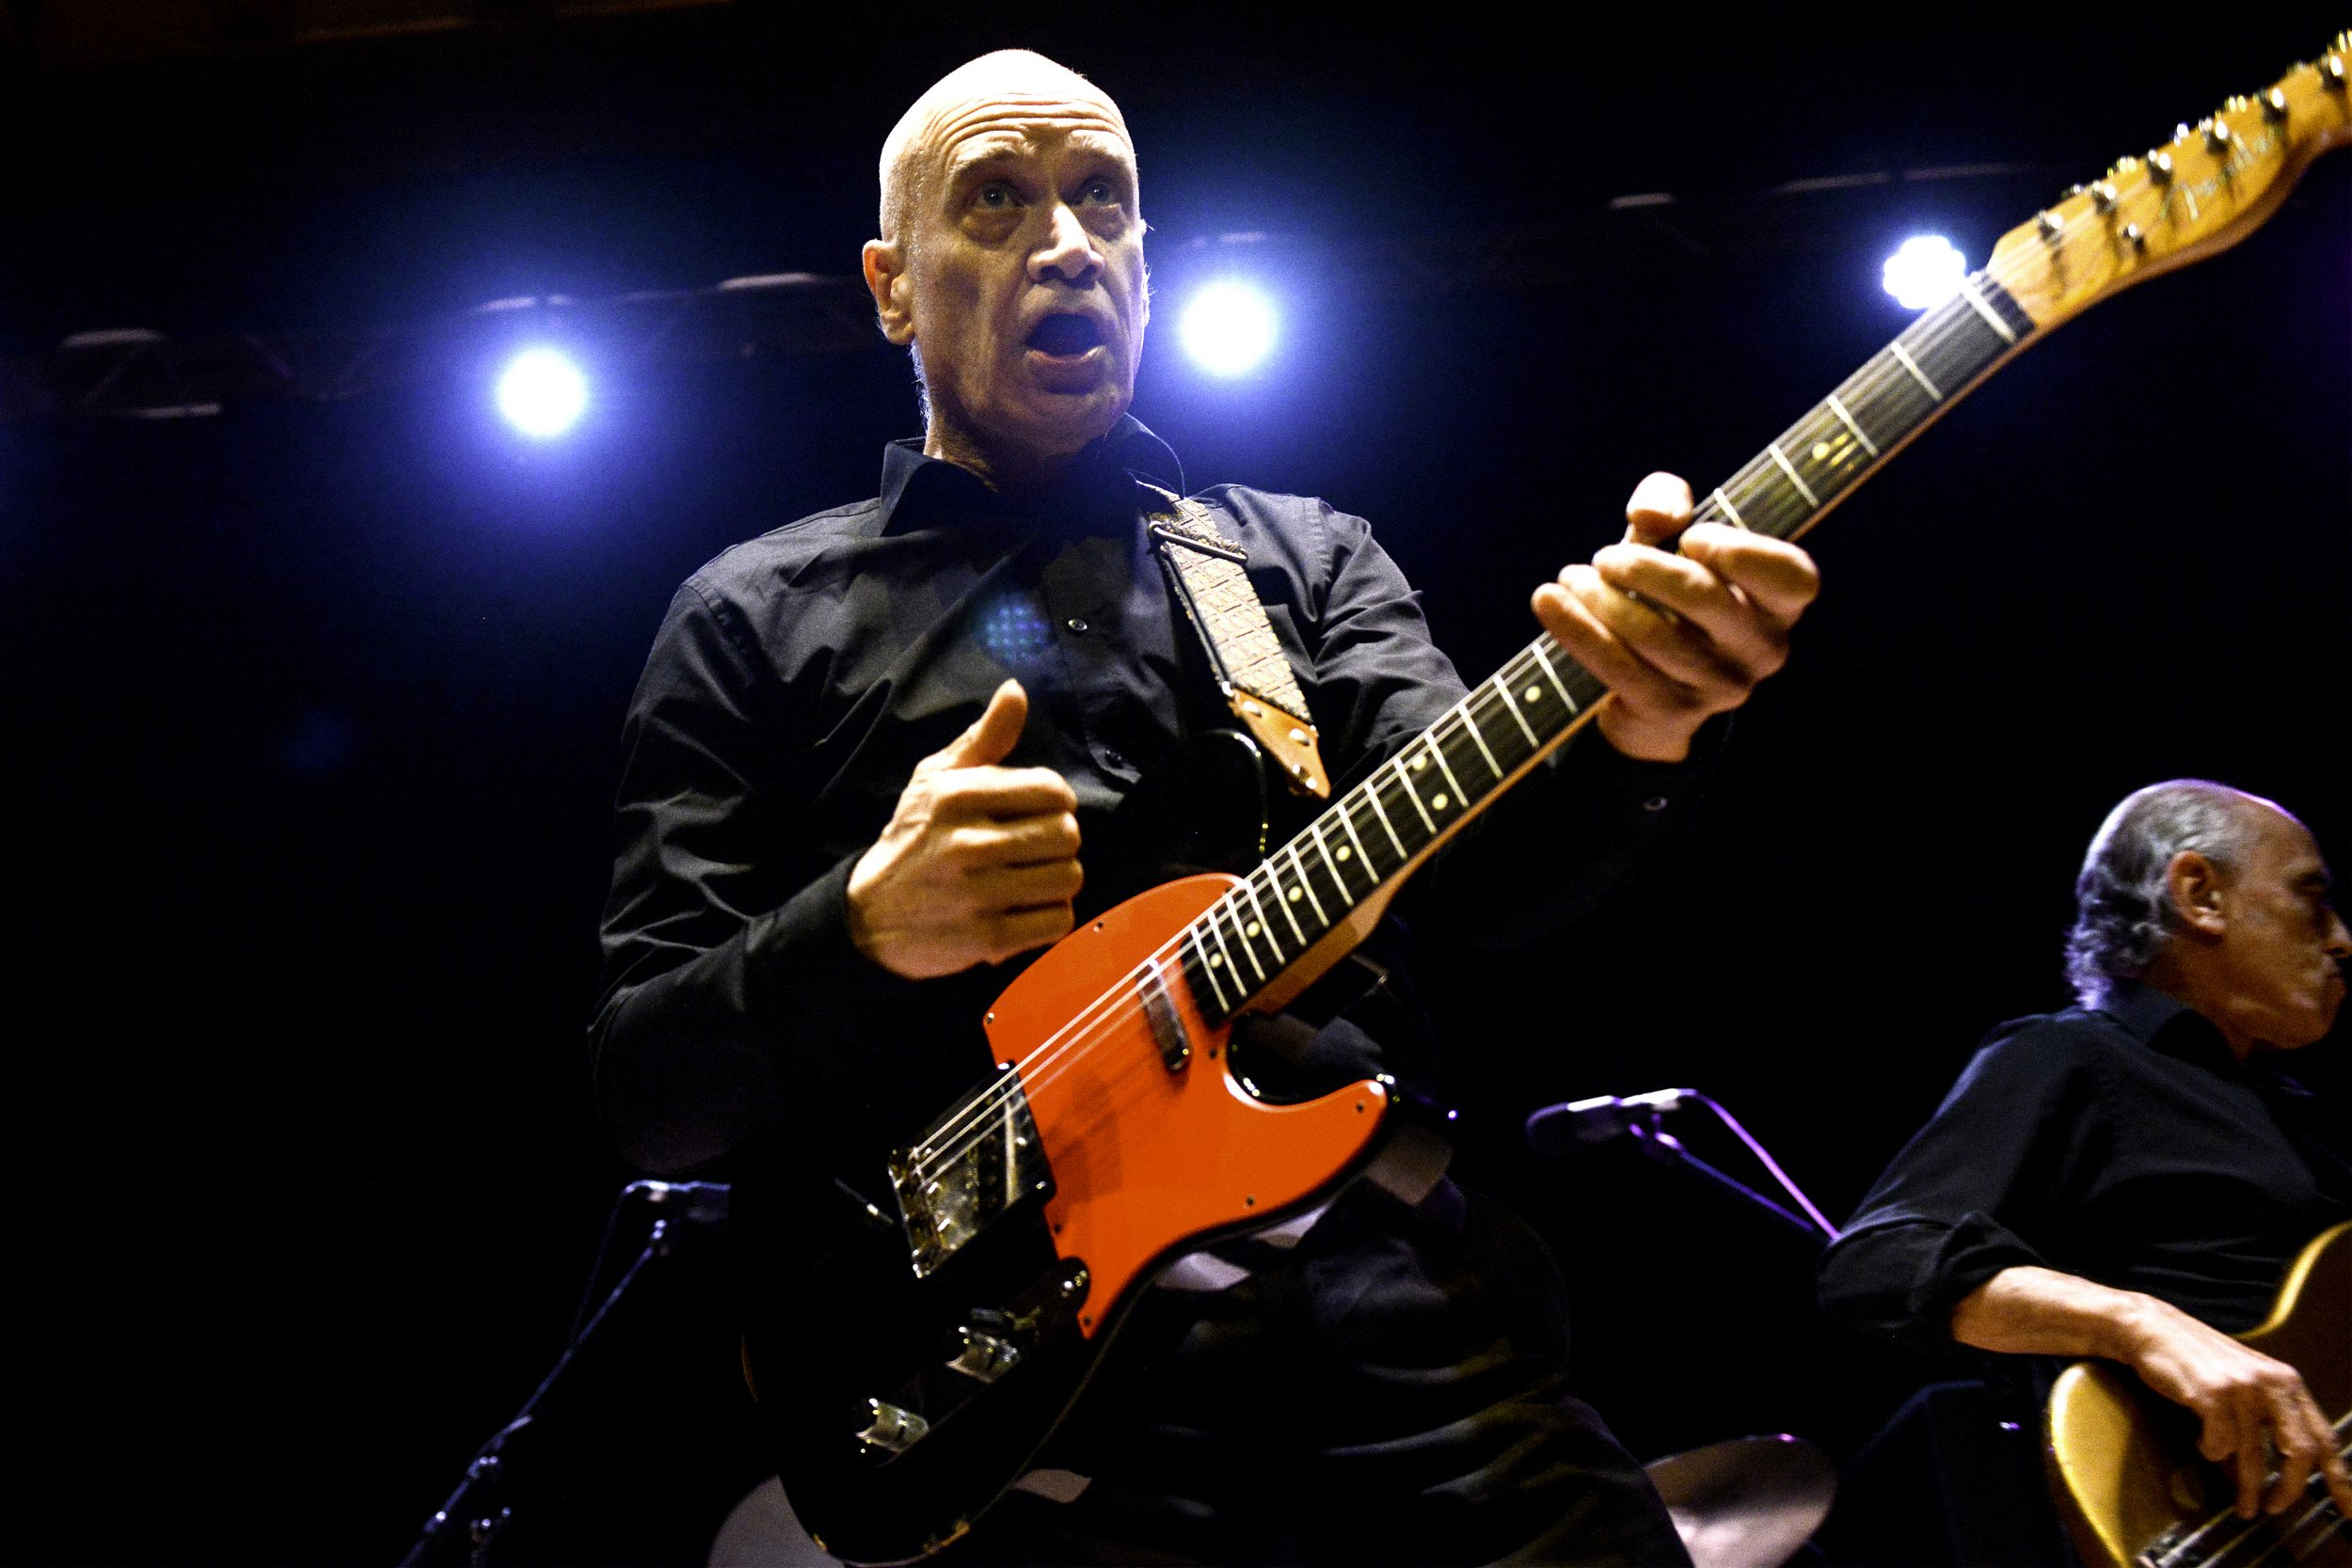 Wilko Johnson Performs at City Hall on October 07, 2016 in Sheffield, England.